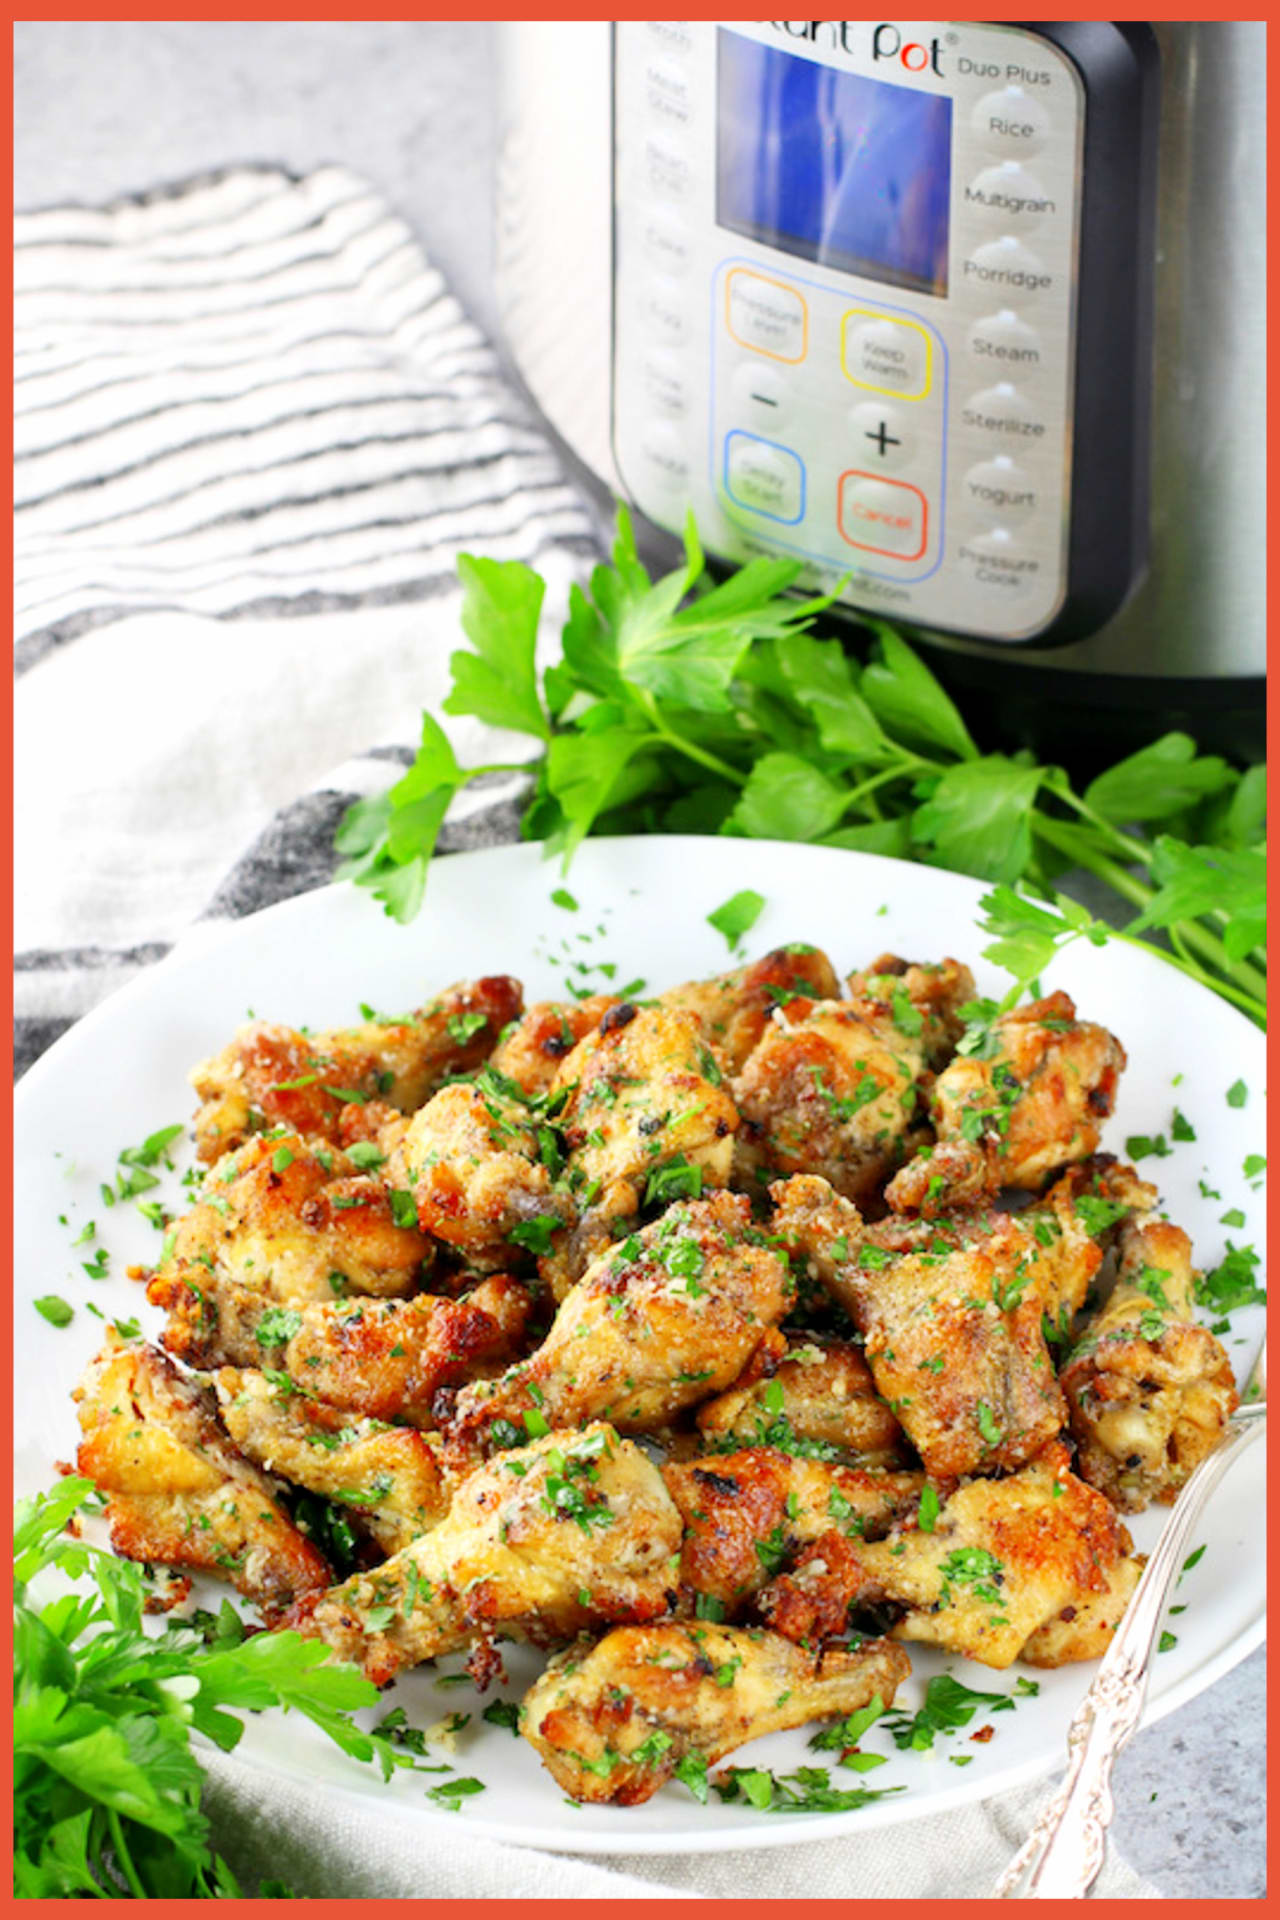 Instant Pot Chicken Recipes For Easy Weeknight Dinners - Super simple Instant Pot chicken wings for easy meals or easy party appextizers